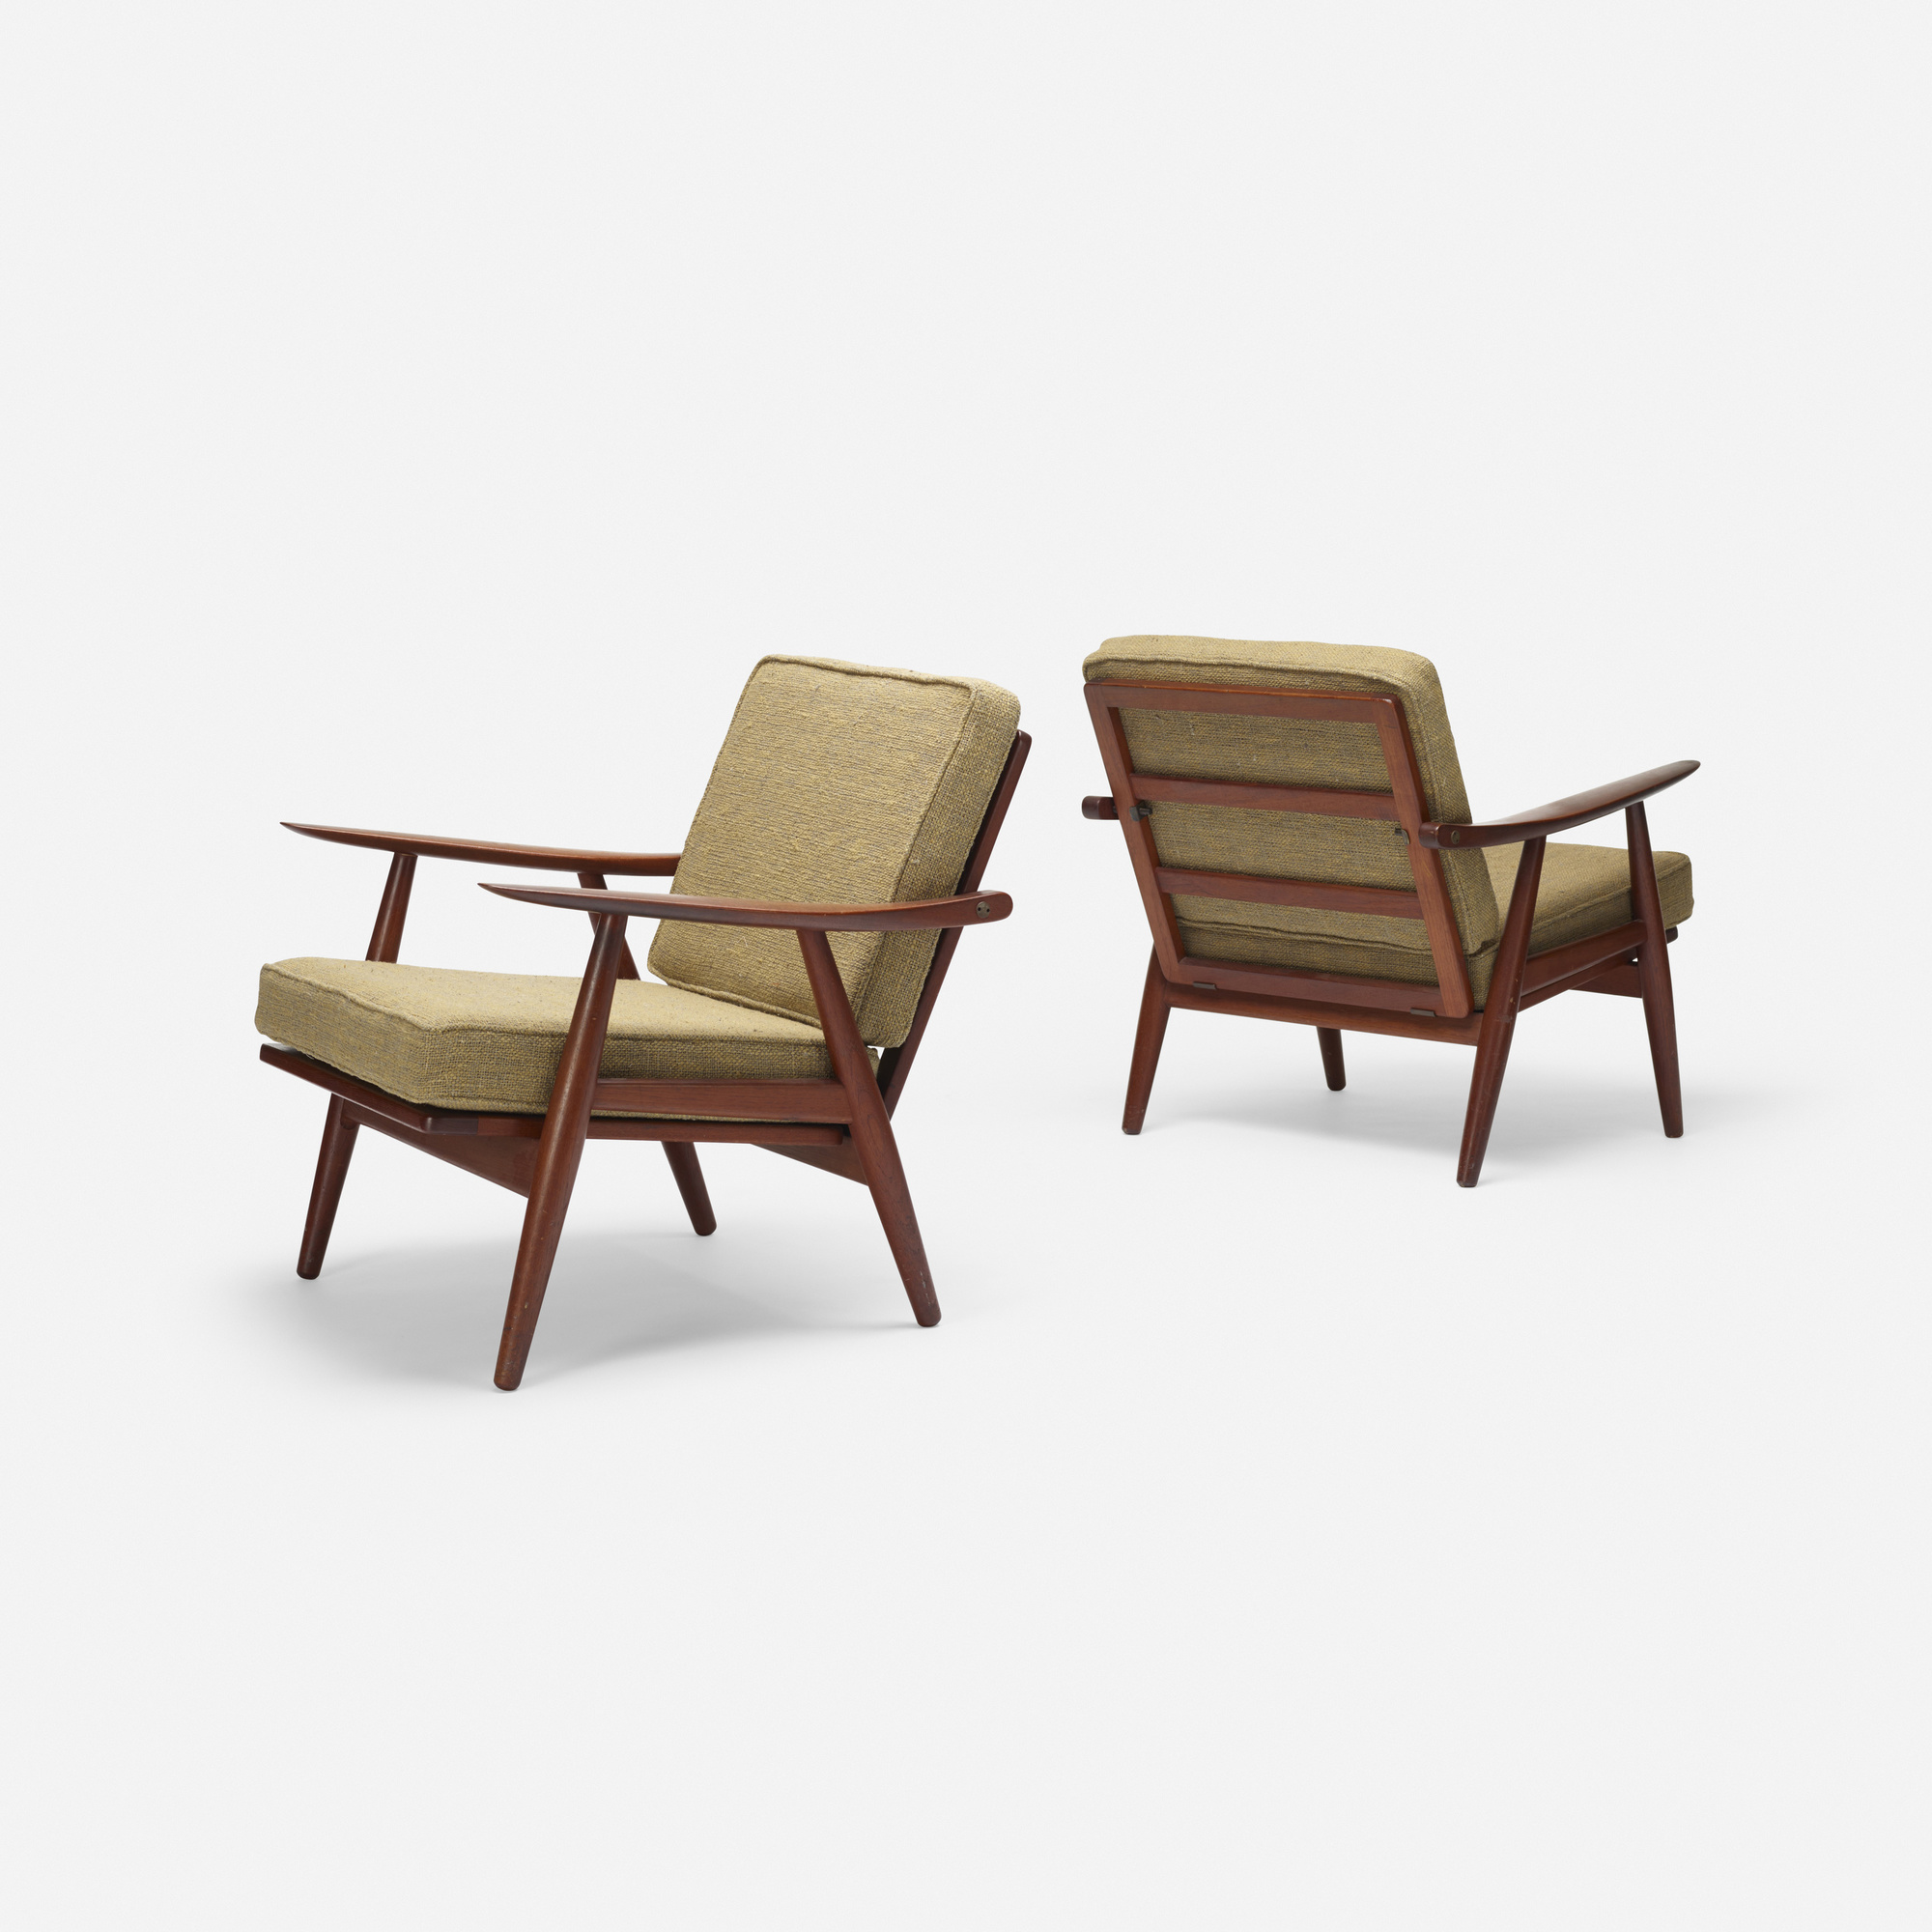 789: Hans J. Wegner / lounge chairs model GH240, pair (2 of 3)